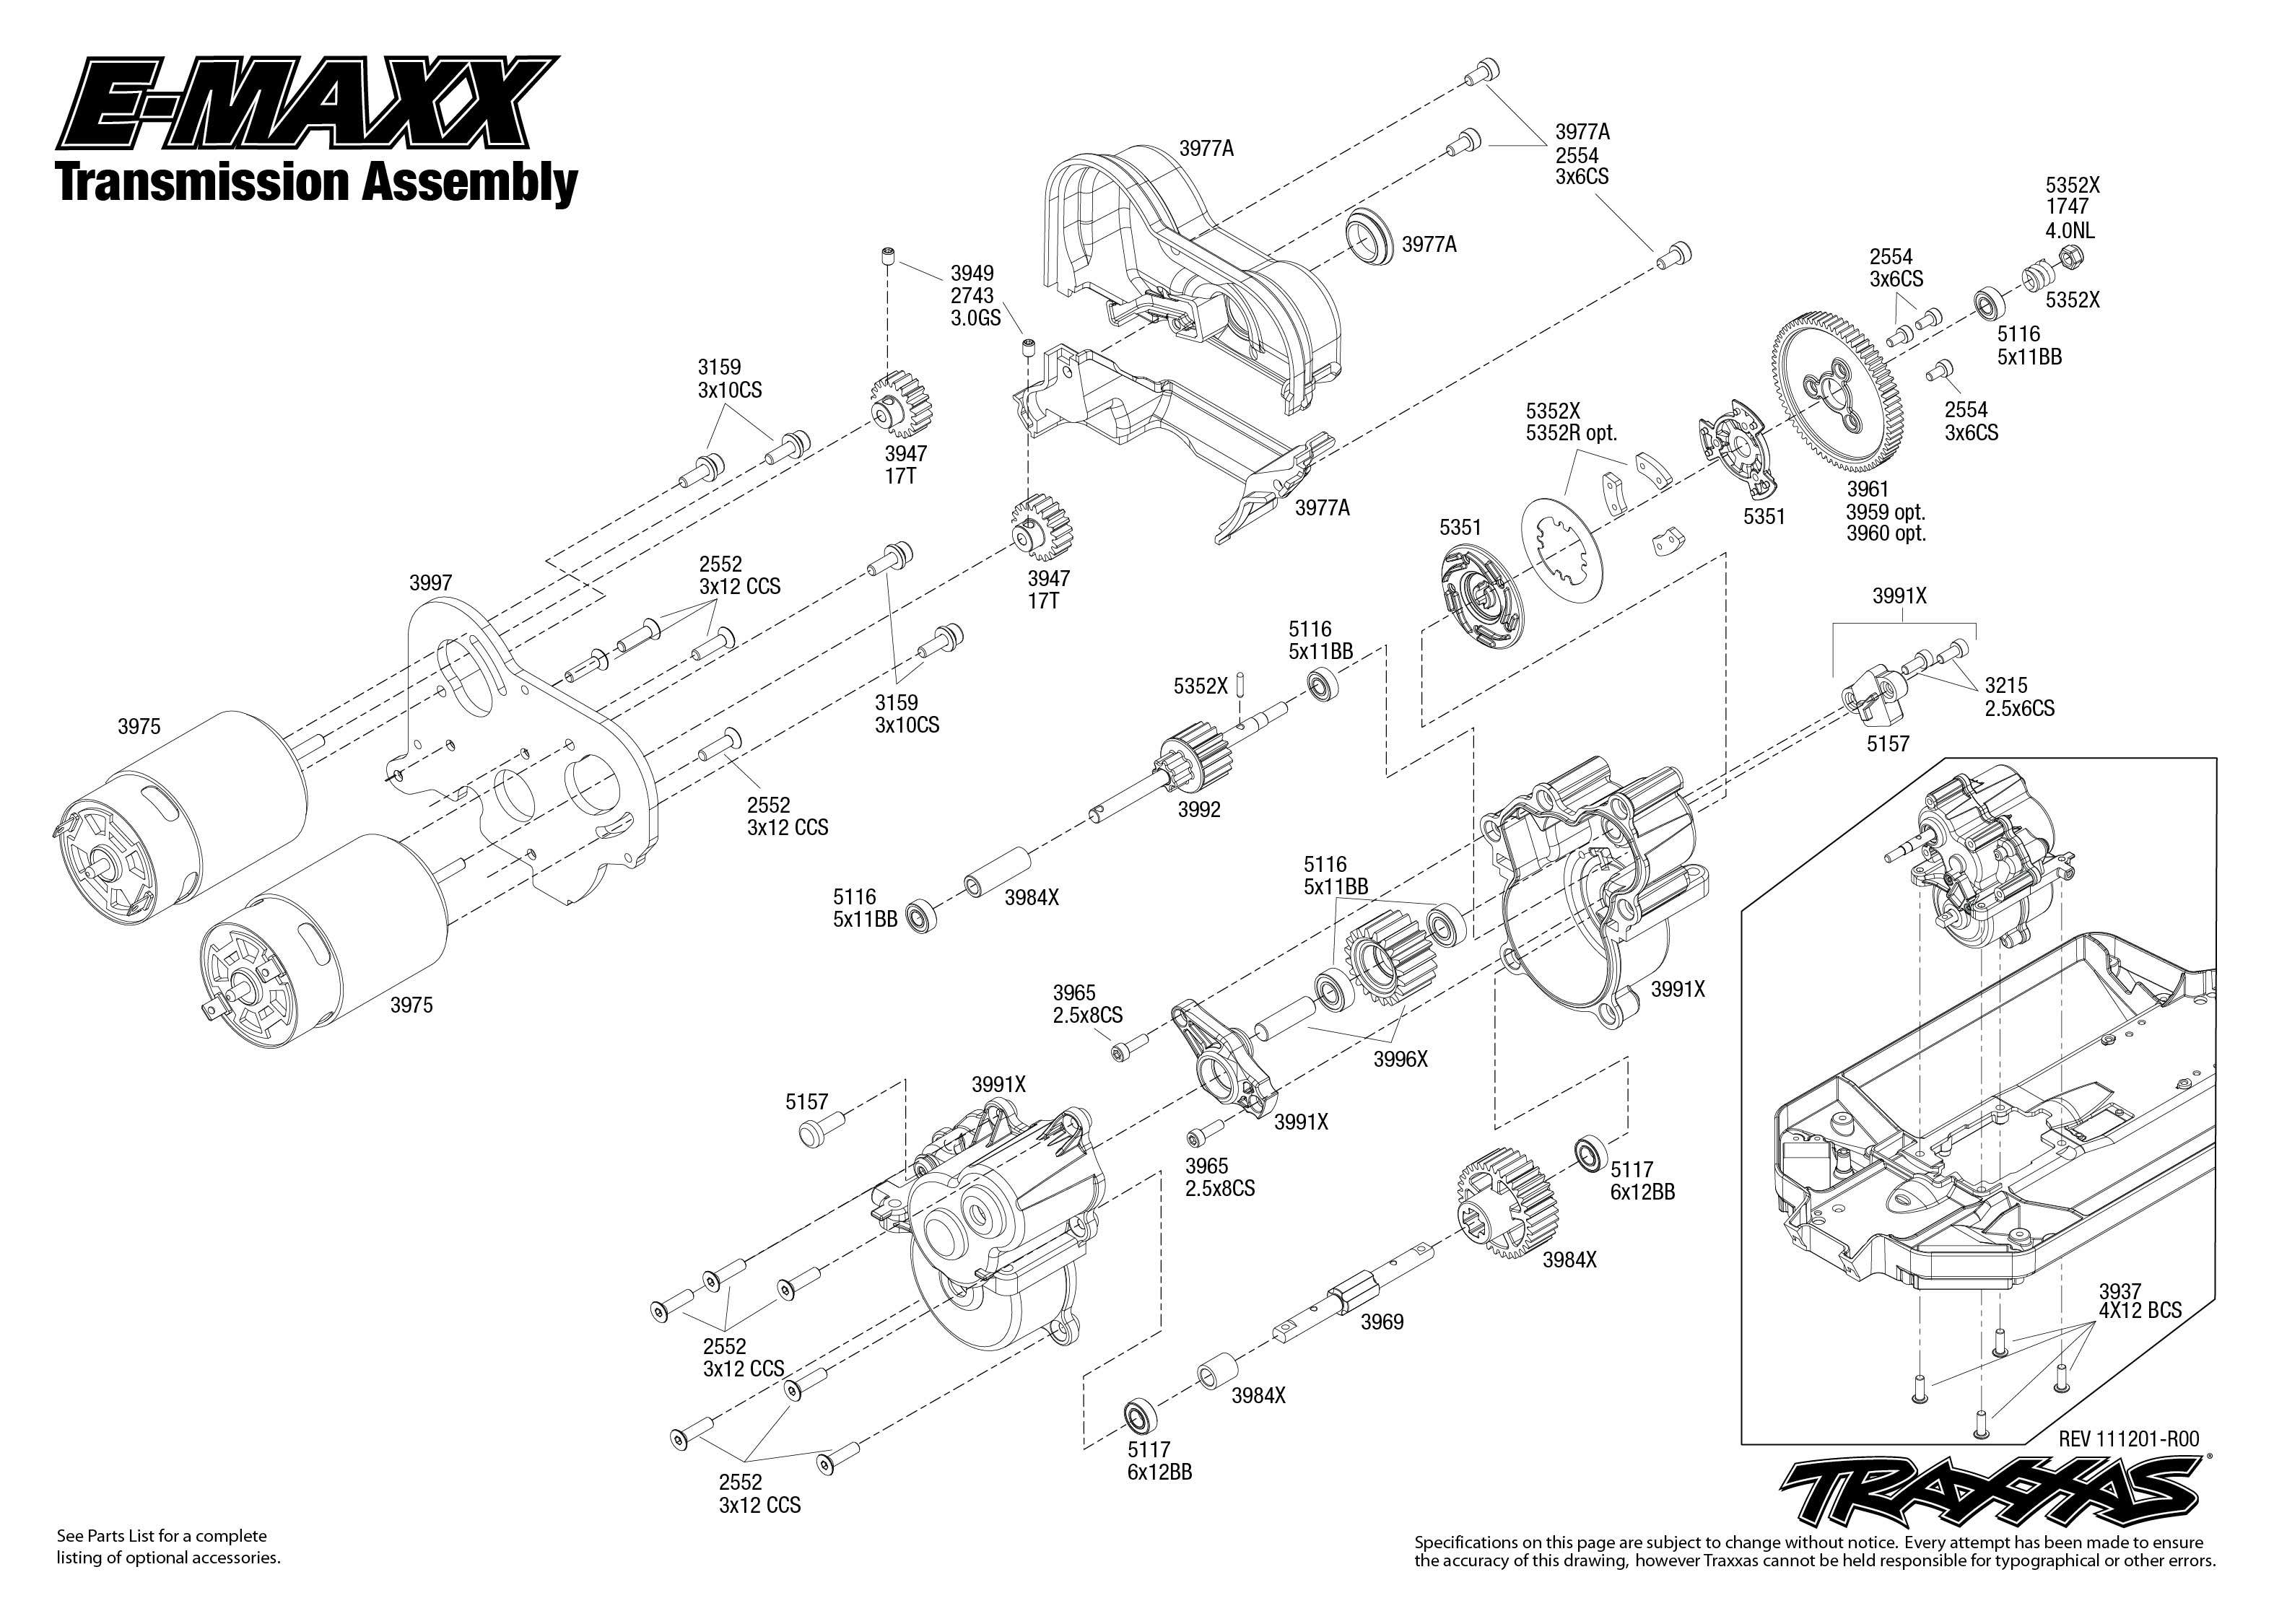 jato transmission diagram jato wiring diagram free